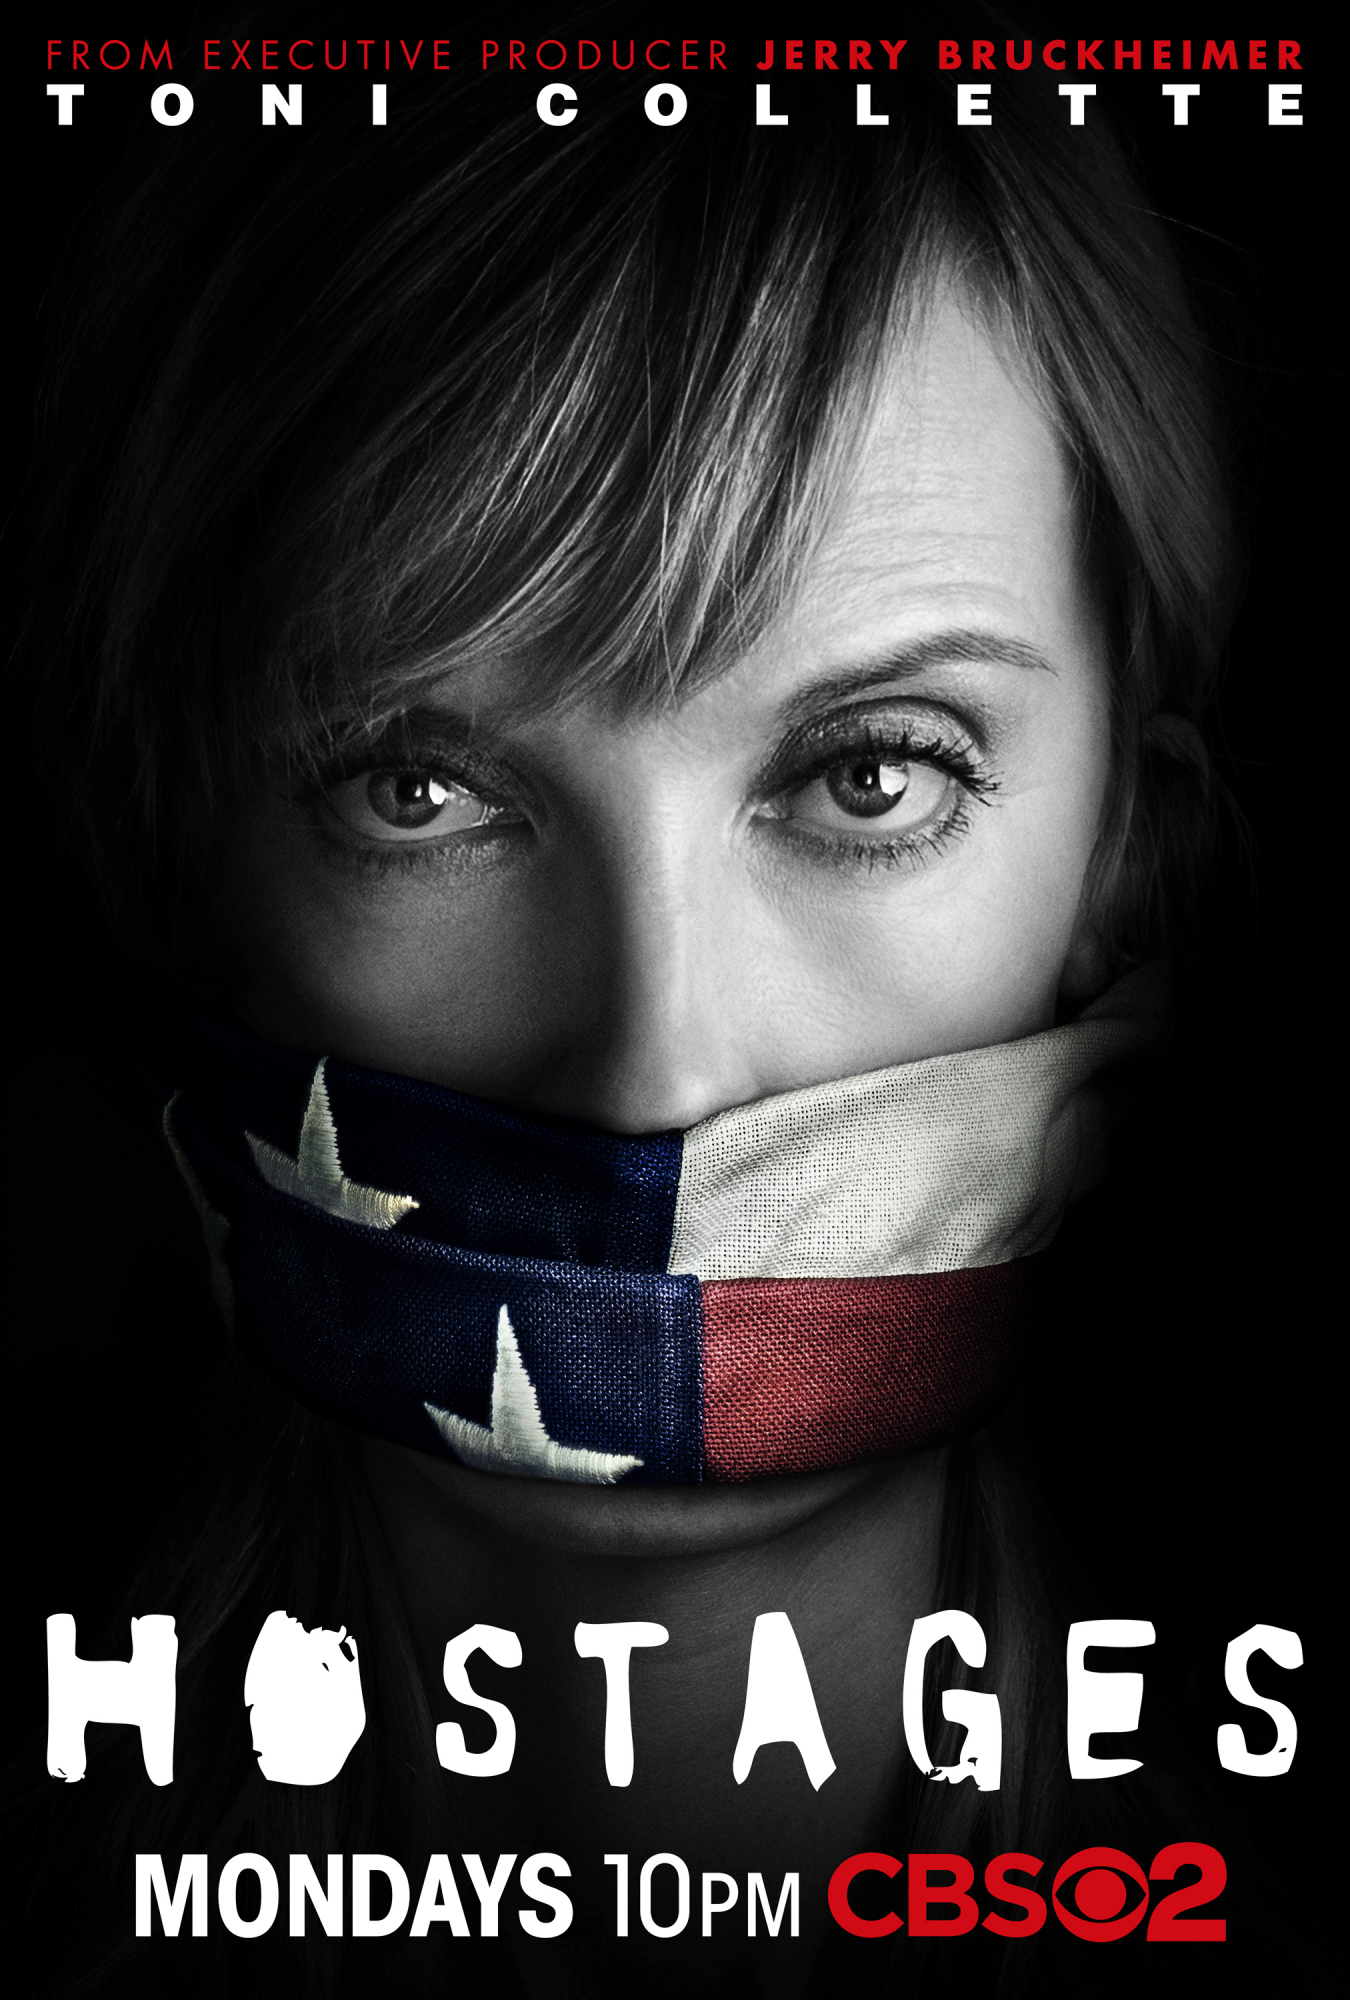 Gagged Via American Flag: CBS Shares 'Hostages' Art